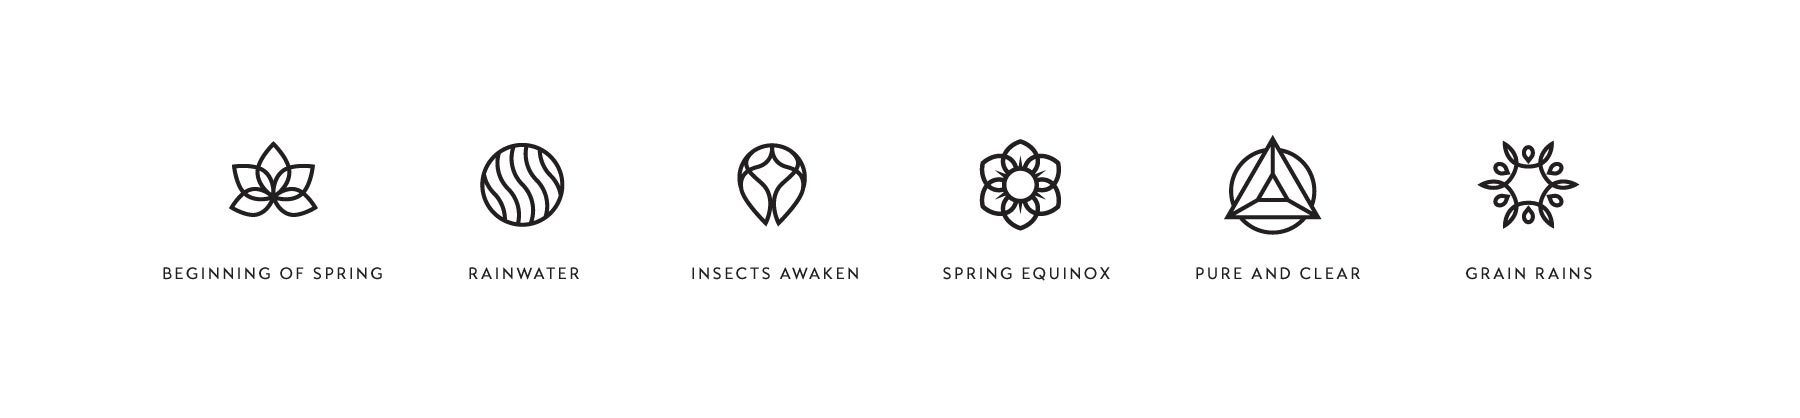 Icon designs for the spring seasons, created by Lisa Furze